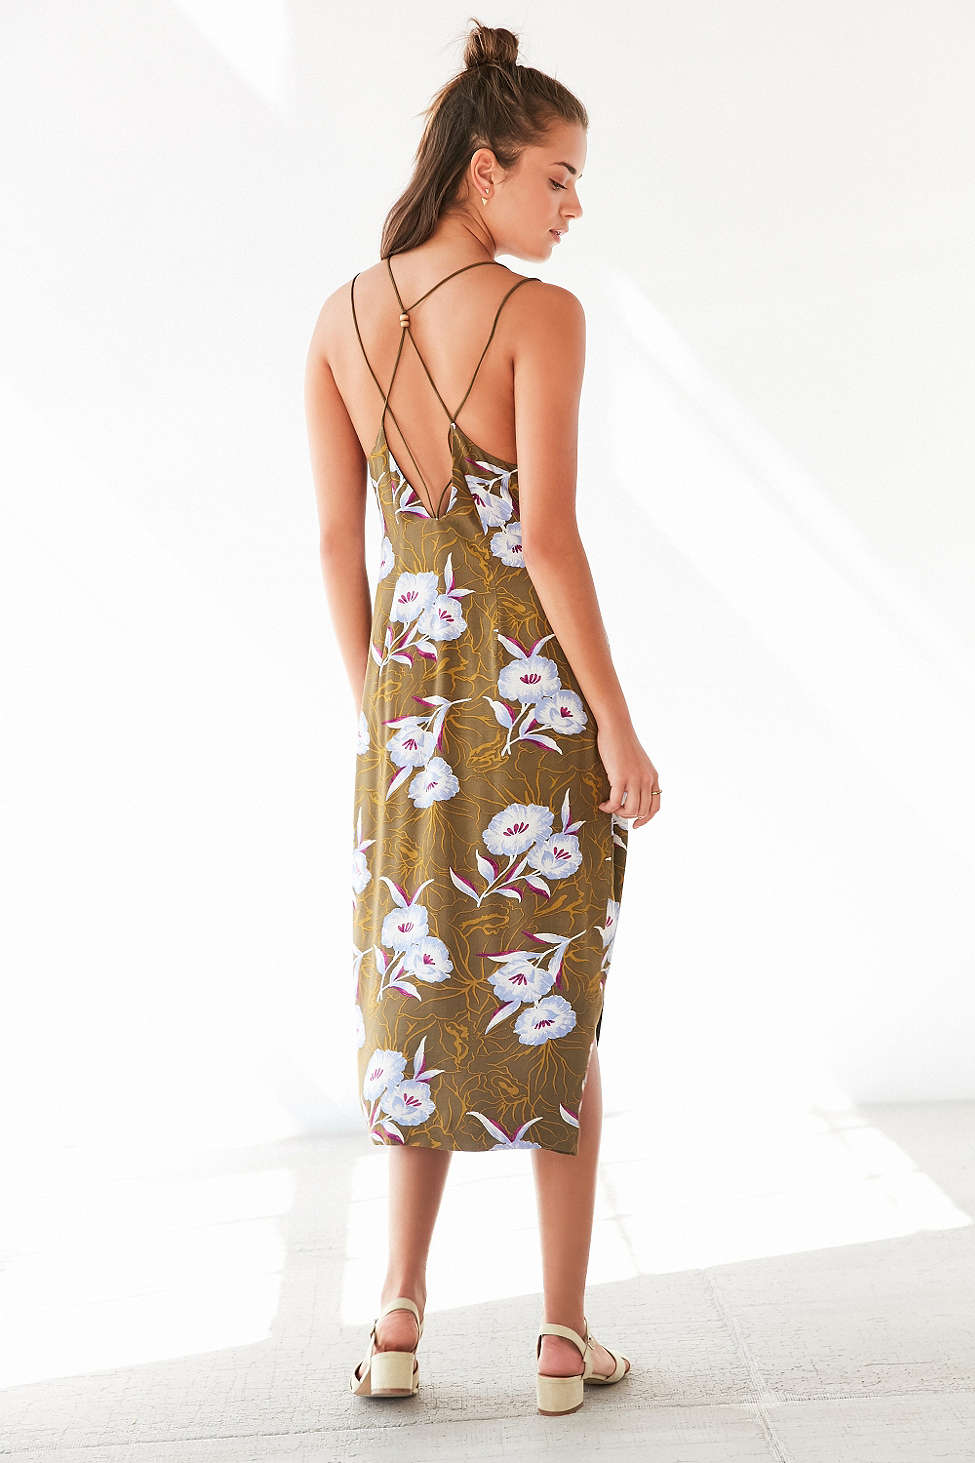 FAVORITE SUMMER DRESSES AT URBAN OUTFITTERS